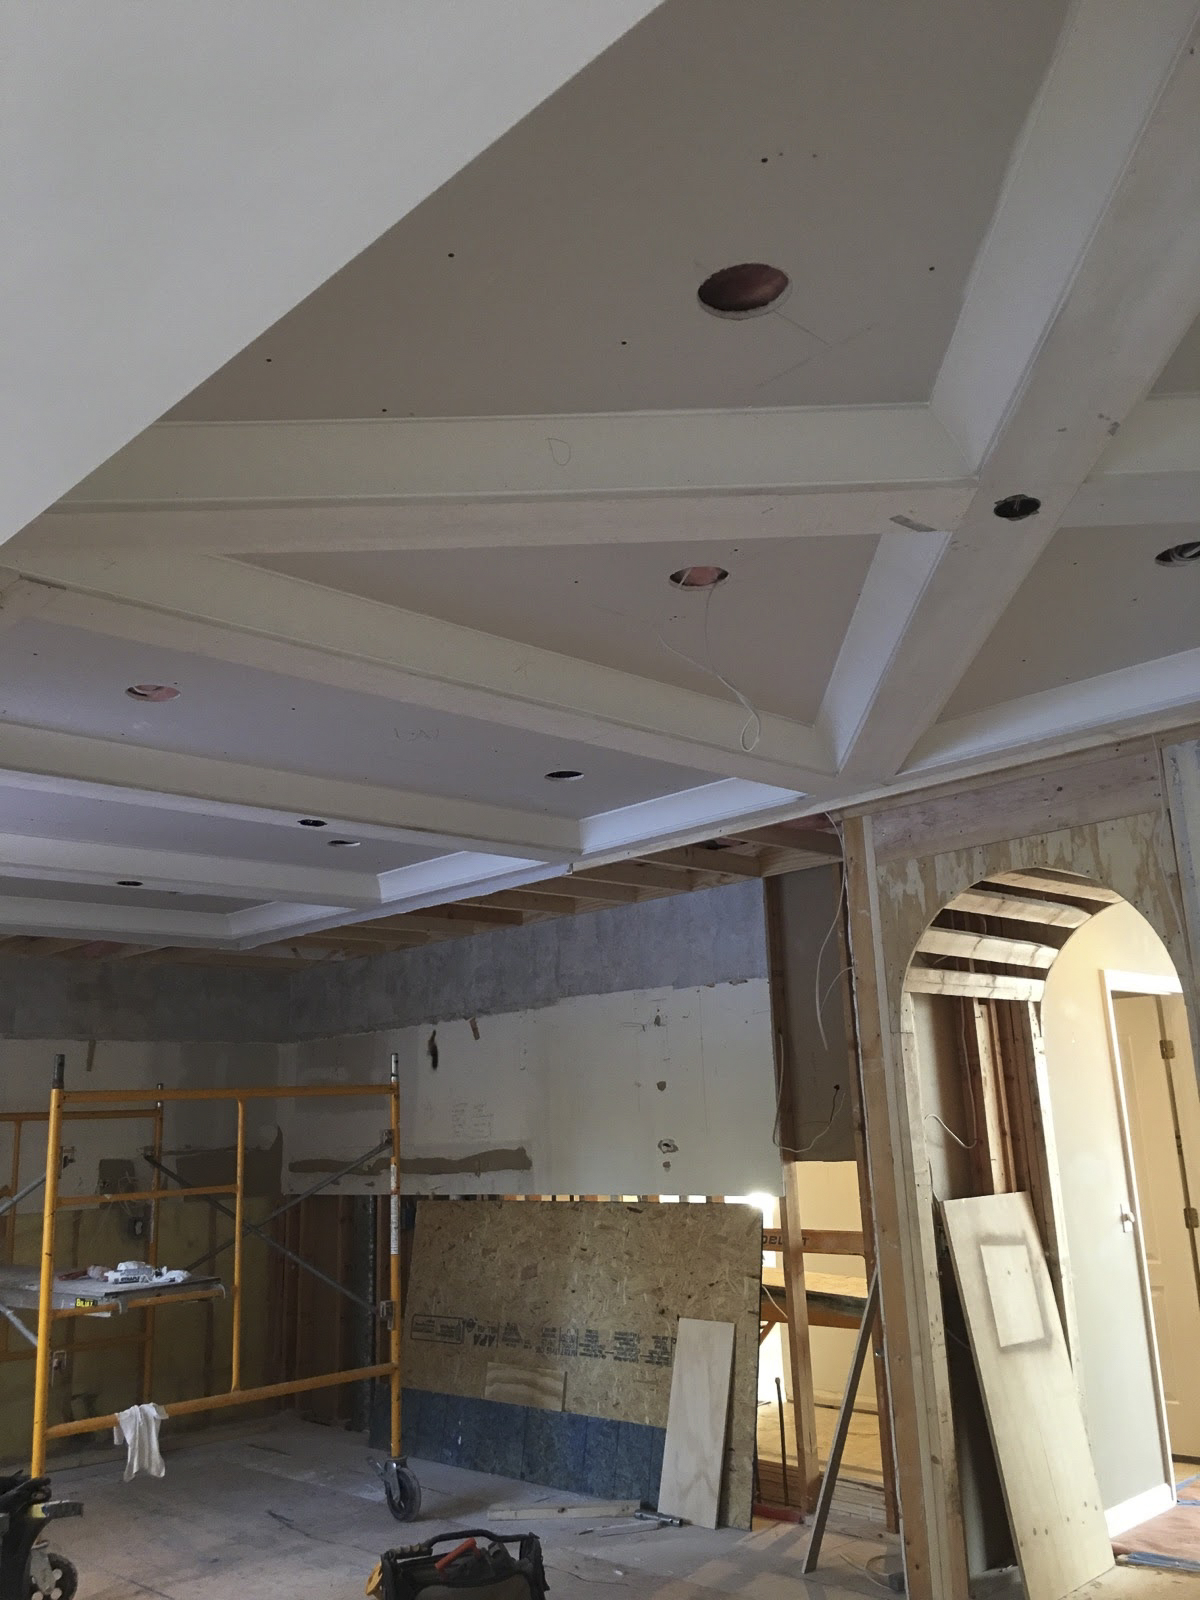 Coffered ceiling complete and awaiting wiring.